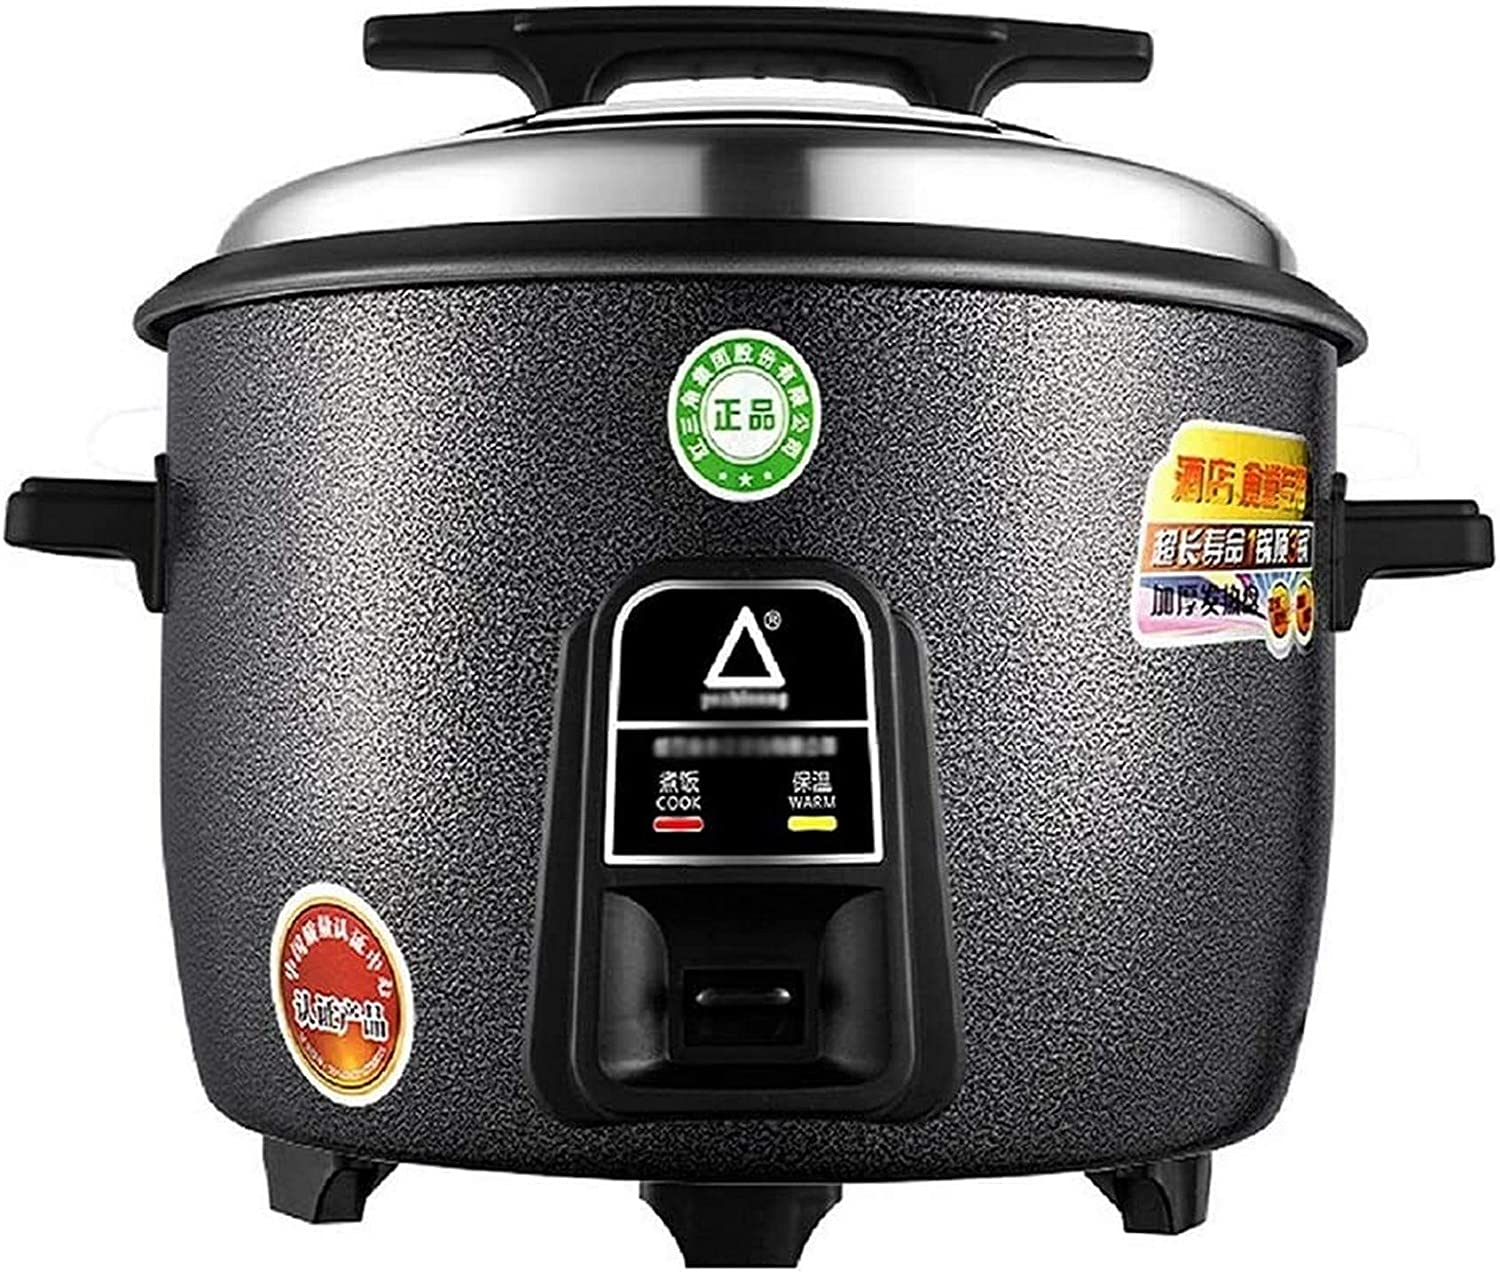 POETRY Commercial Rice Cooker Large Capacity 8-45L Large Old-Fashioned Rice Cooker for Canteen/Hotel/Hotel/School (8-60 People) (Size: 10L-1600W)